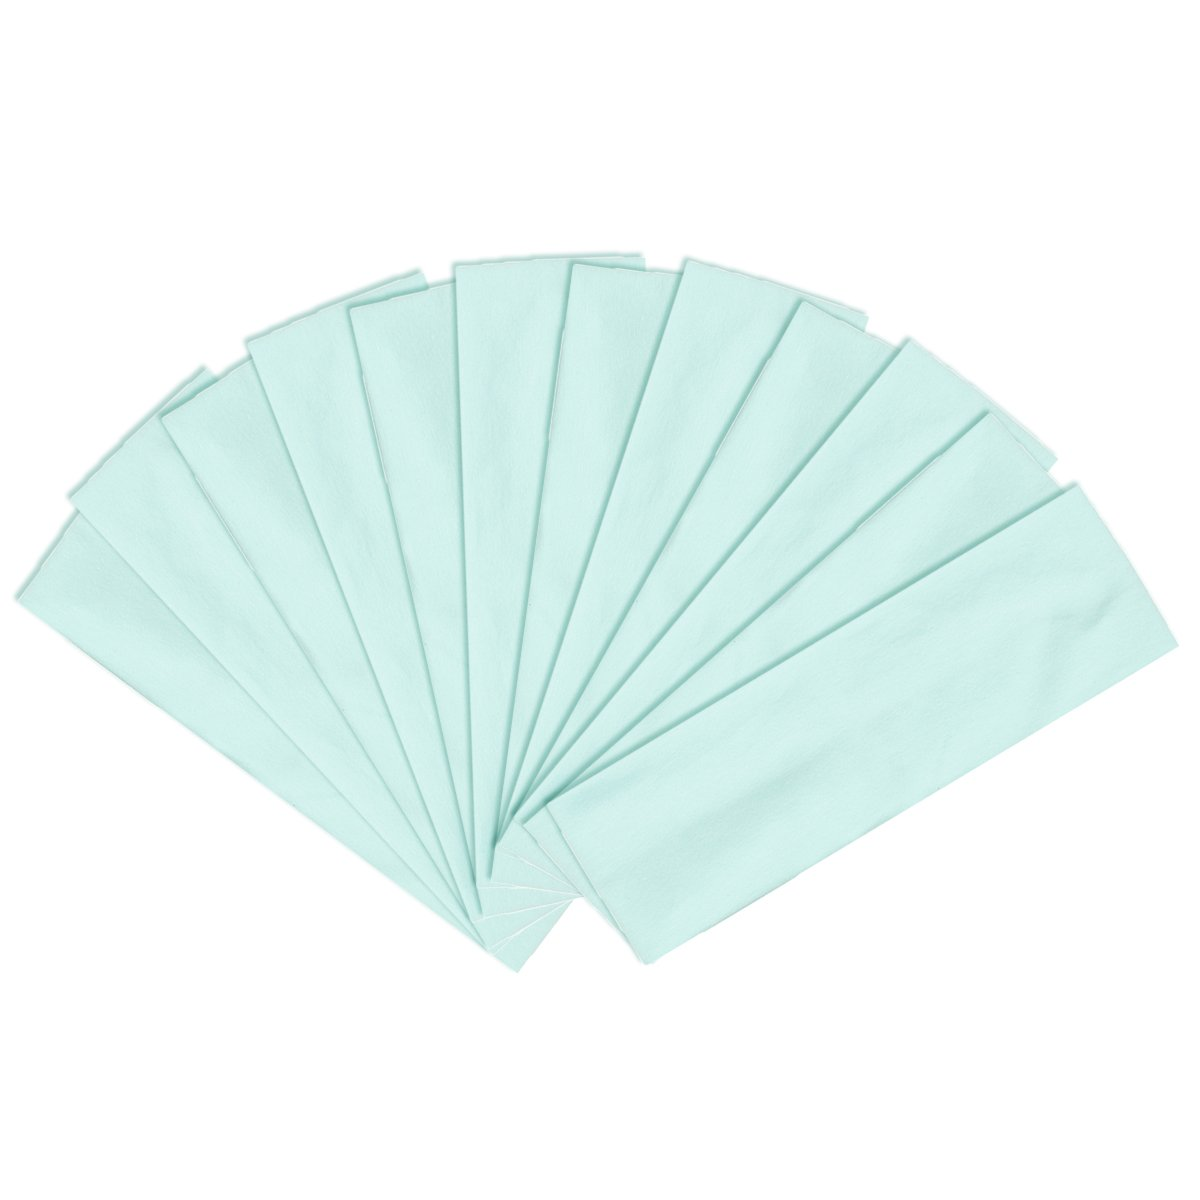 High Quality Cotton Elastic Yoga Fashion Wide Headband, Solid Light Seafoam (12 pack)